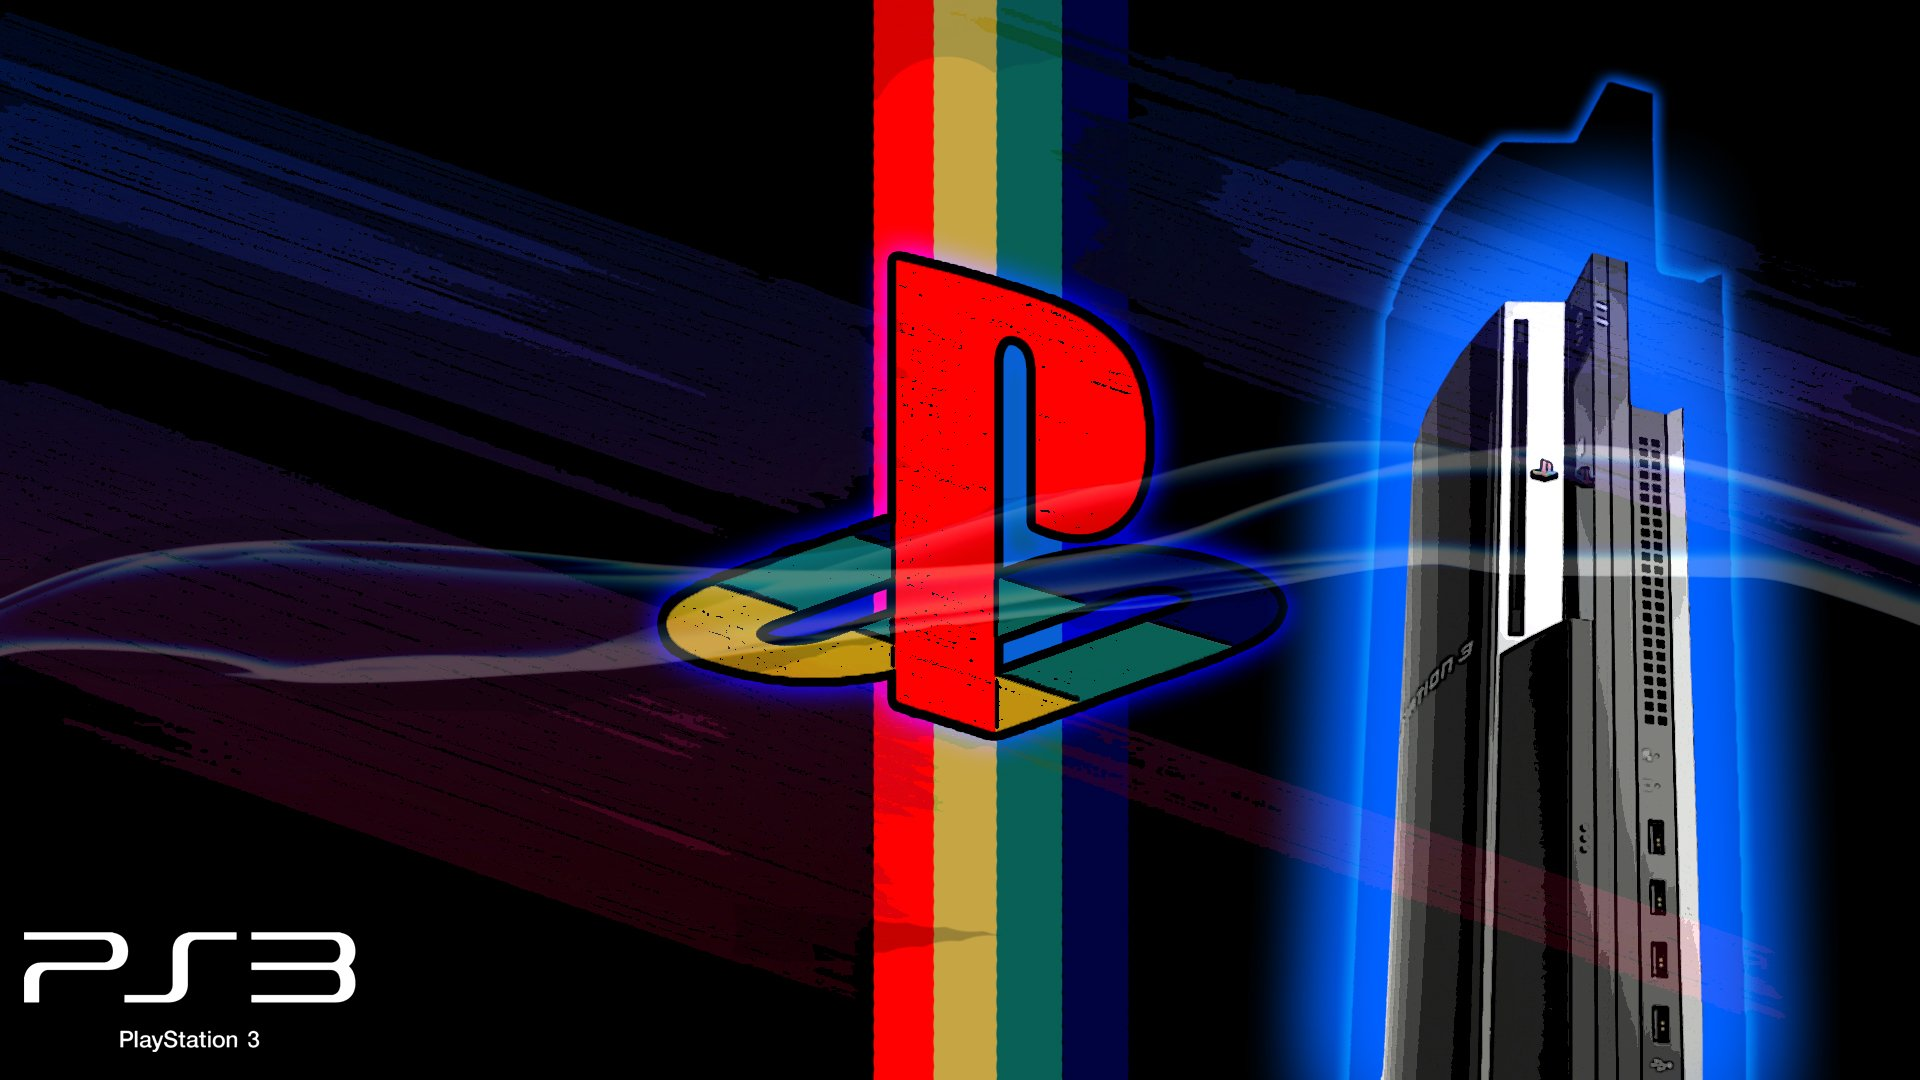 playstation logo wallpaper wallpapersafari